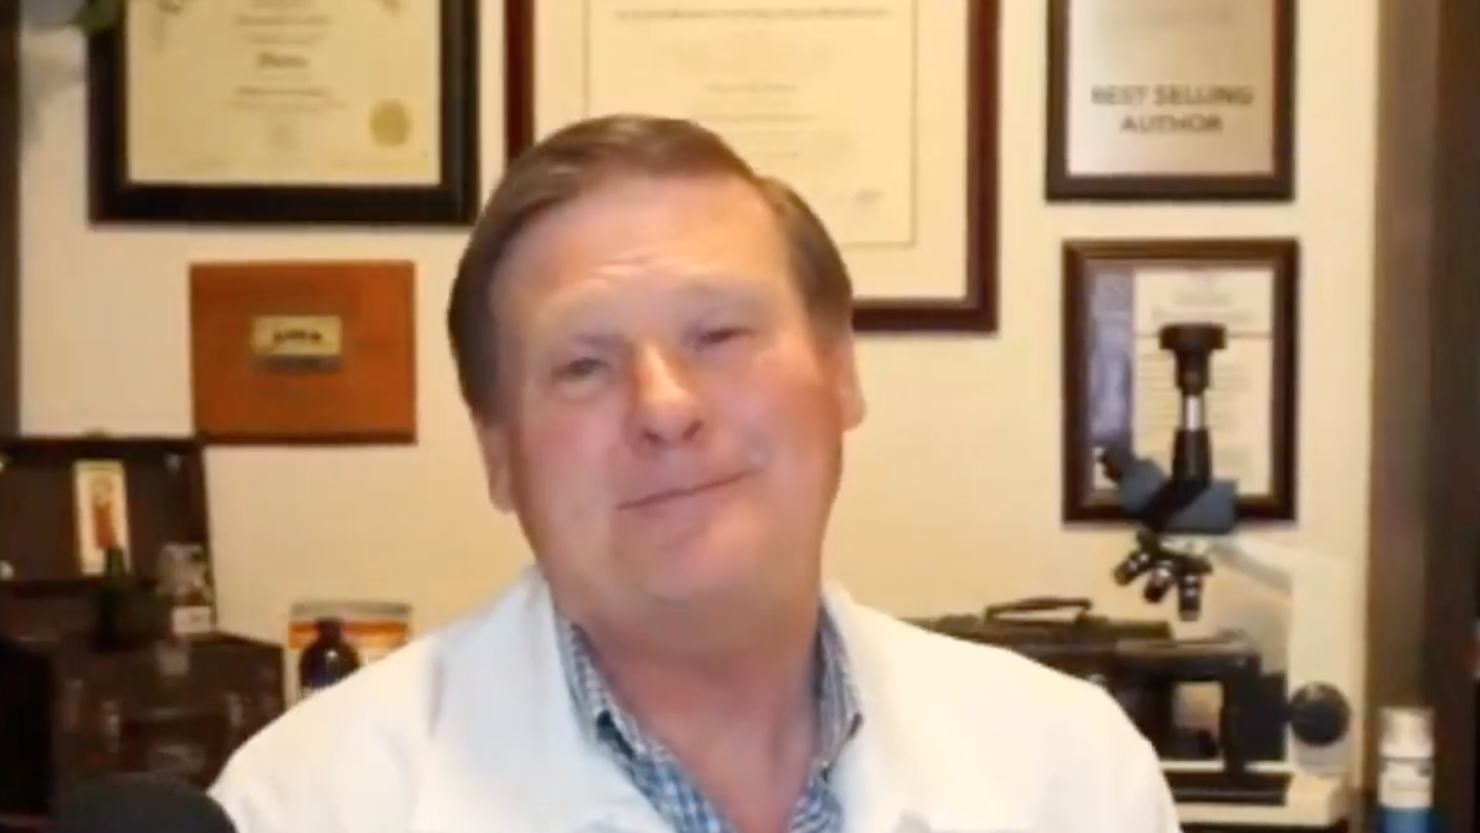 Feds indict man for posing as physician, selling COVID-19 'cure' on internet